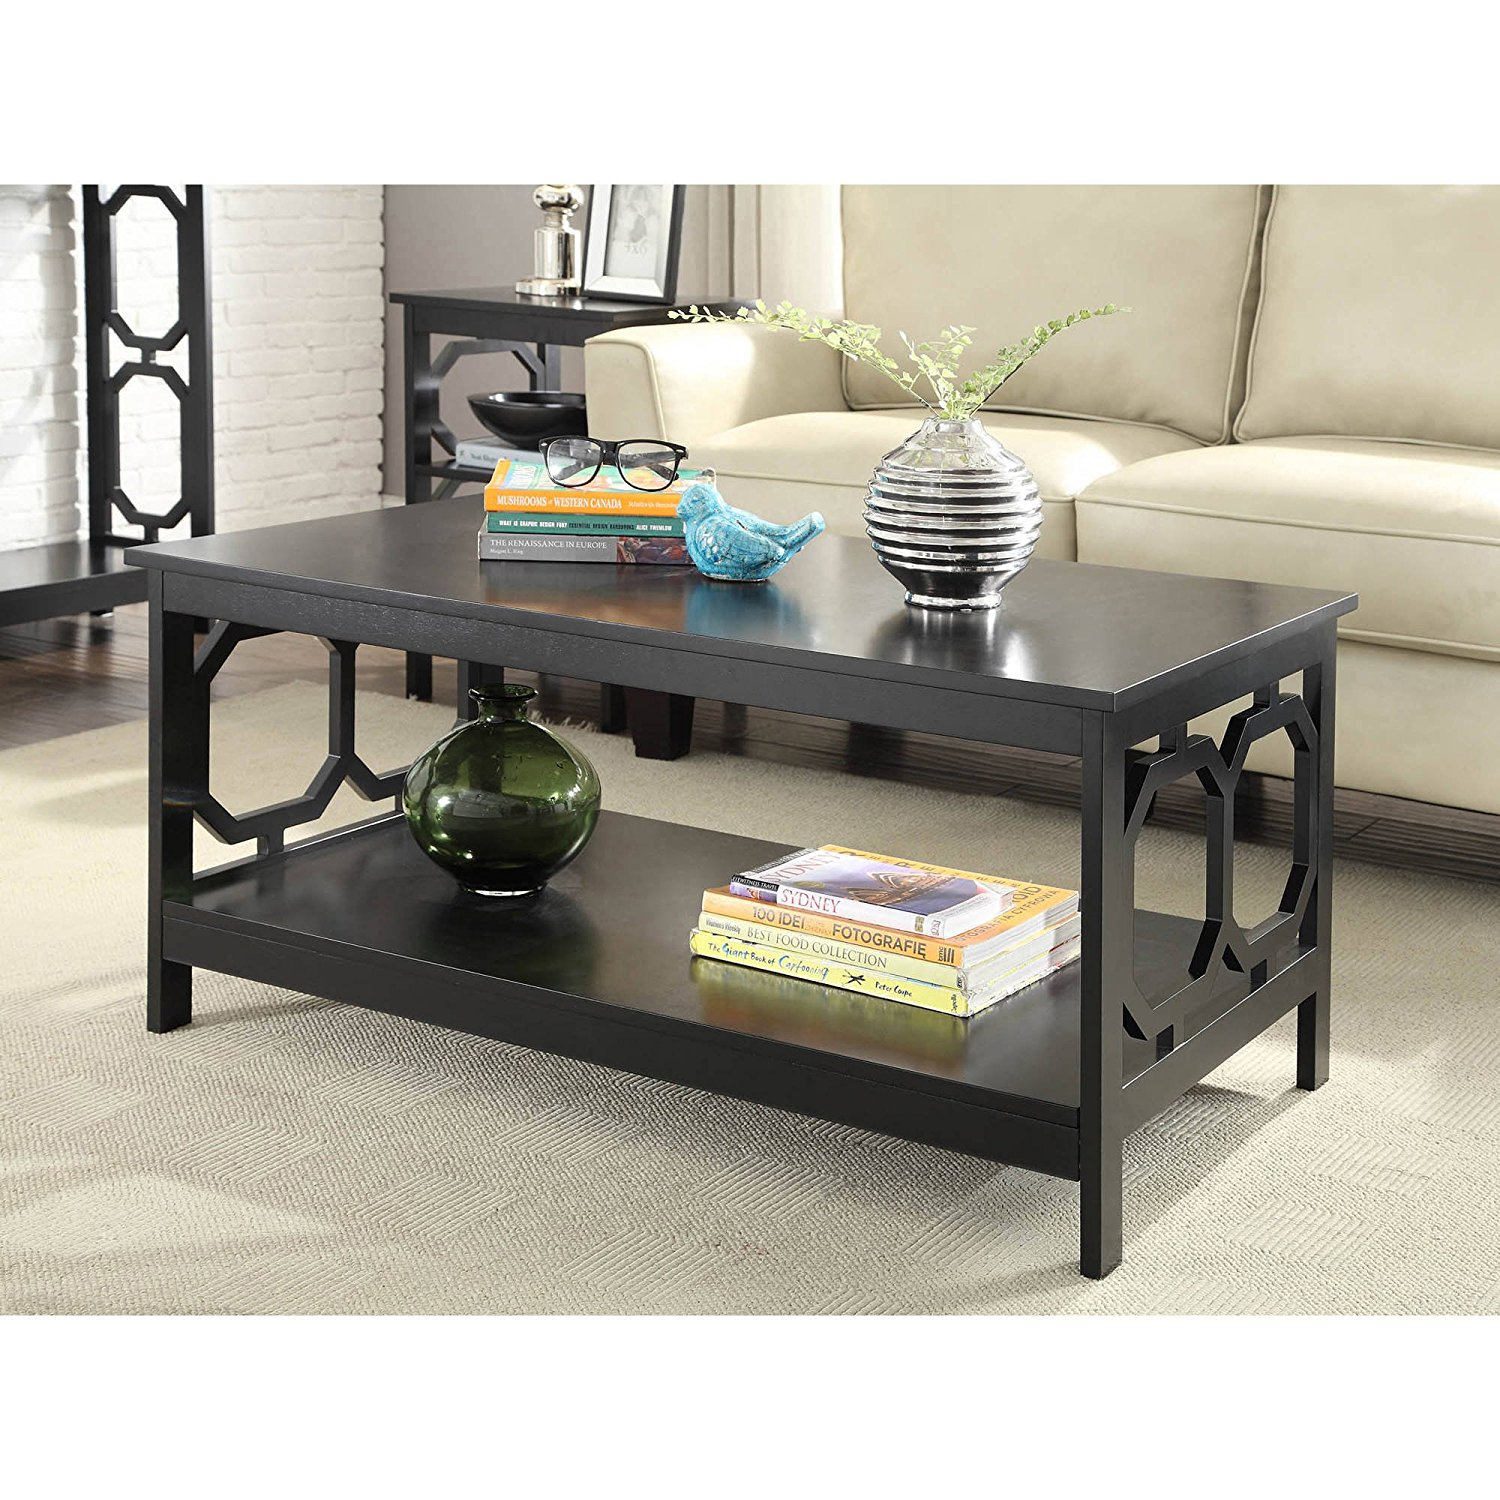 b30d0be4569c3 Living Room Coffee Table Home Furniture Contemporary Rectangular Books  Magazine Storage